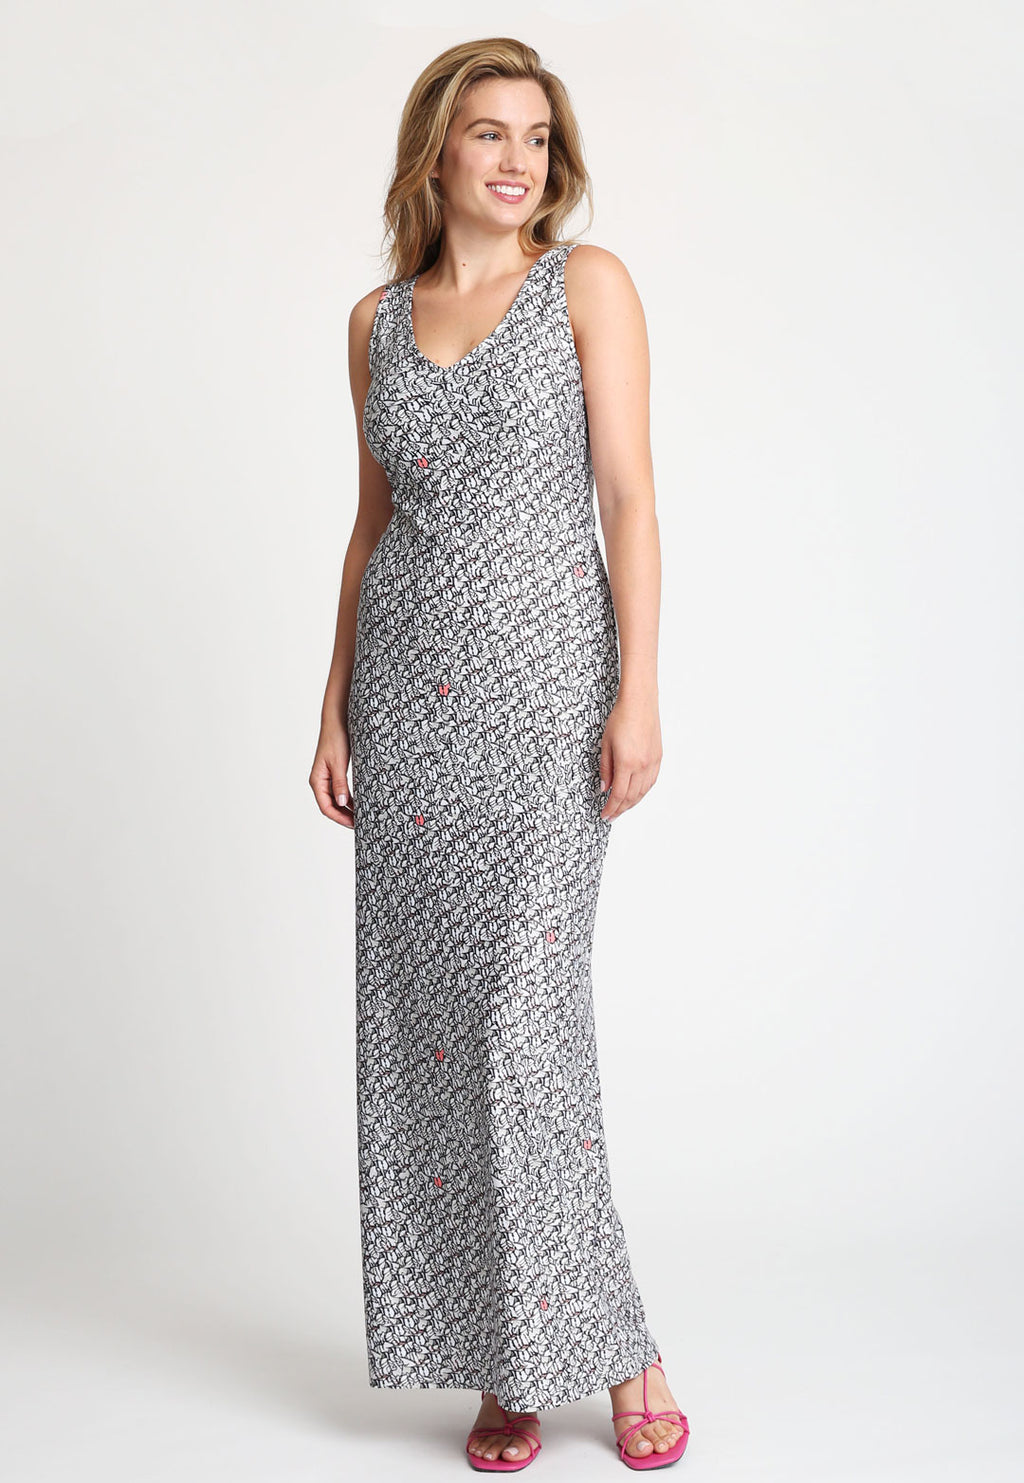 Lavinia Long Dress in Calathea front view